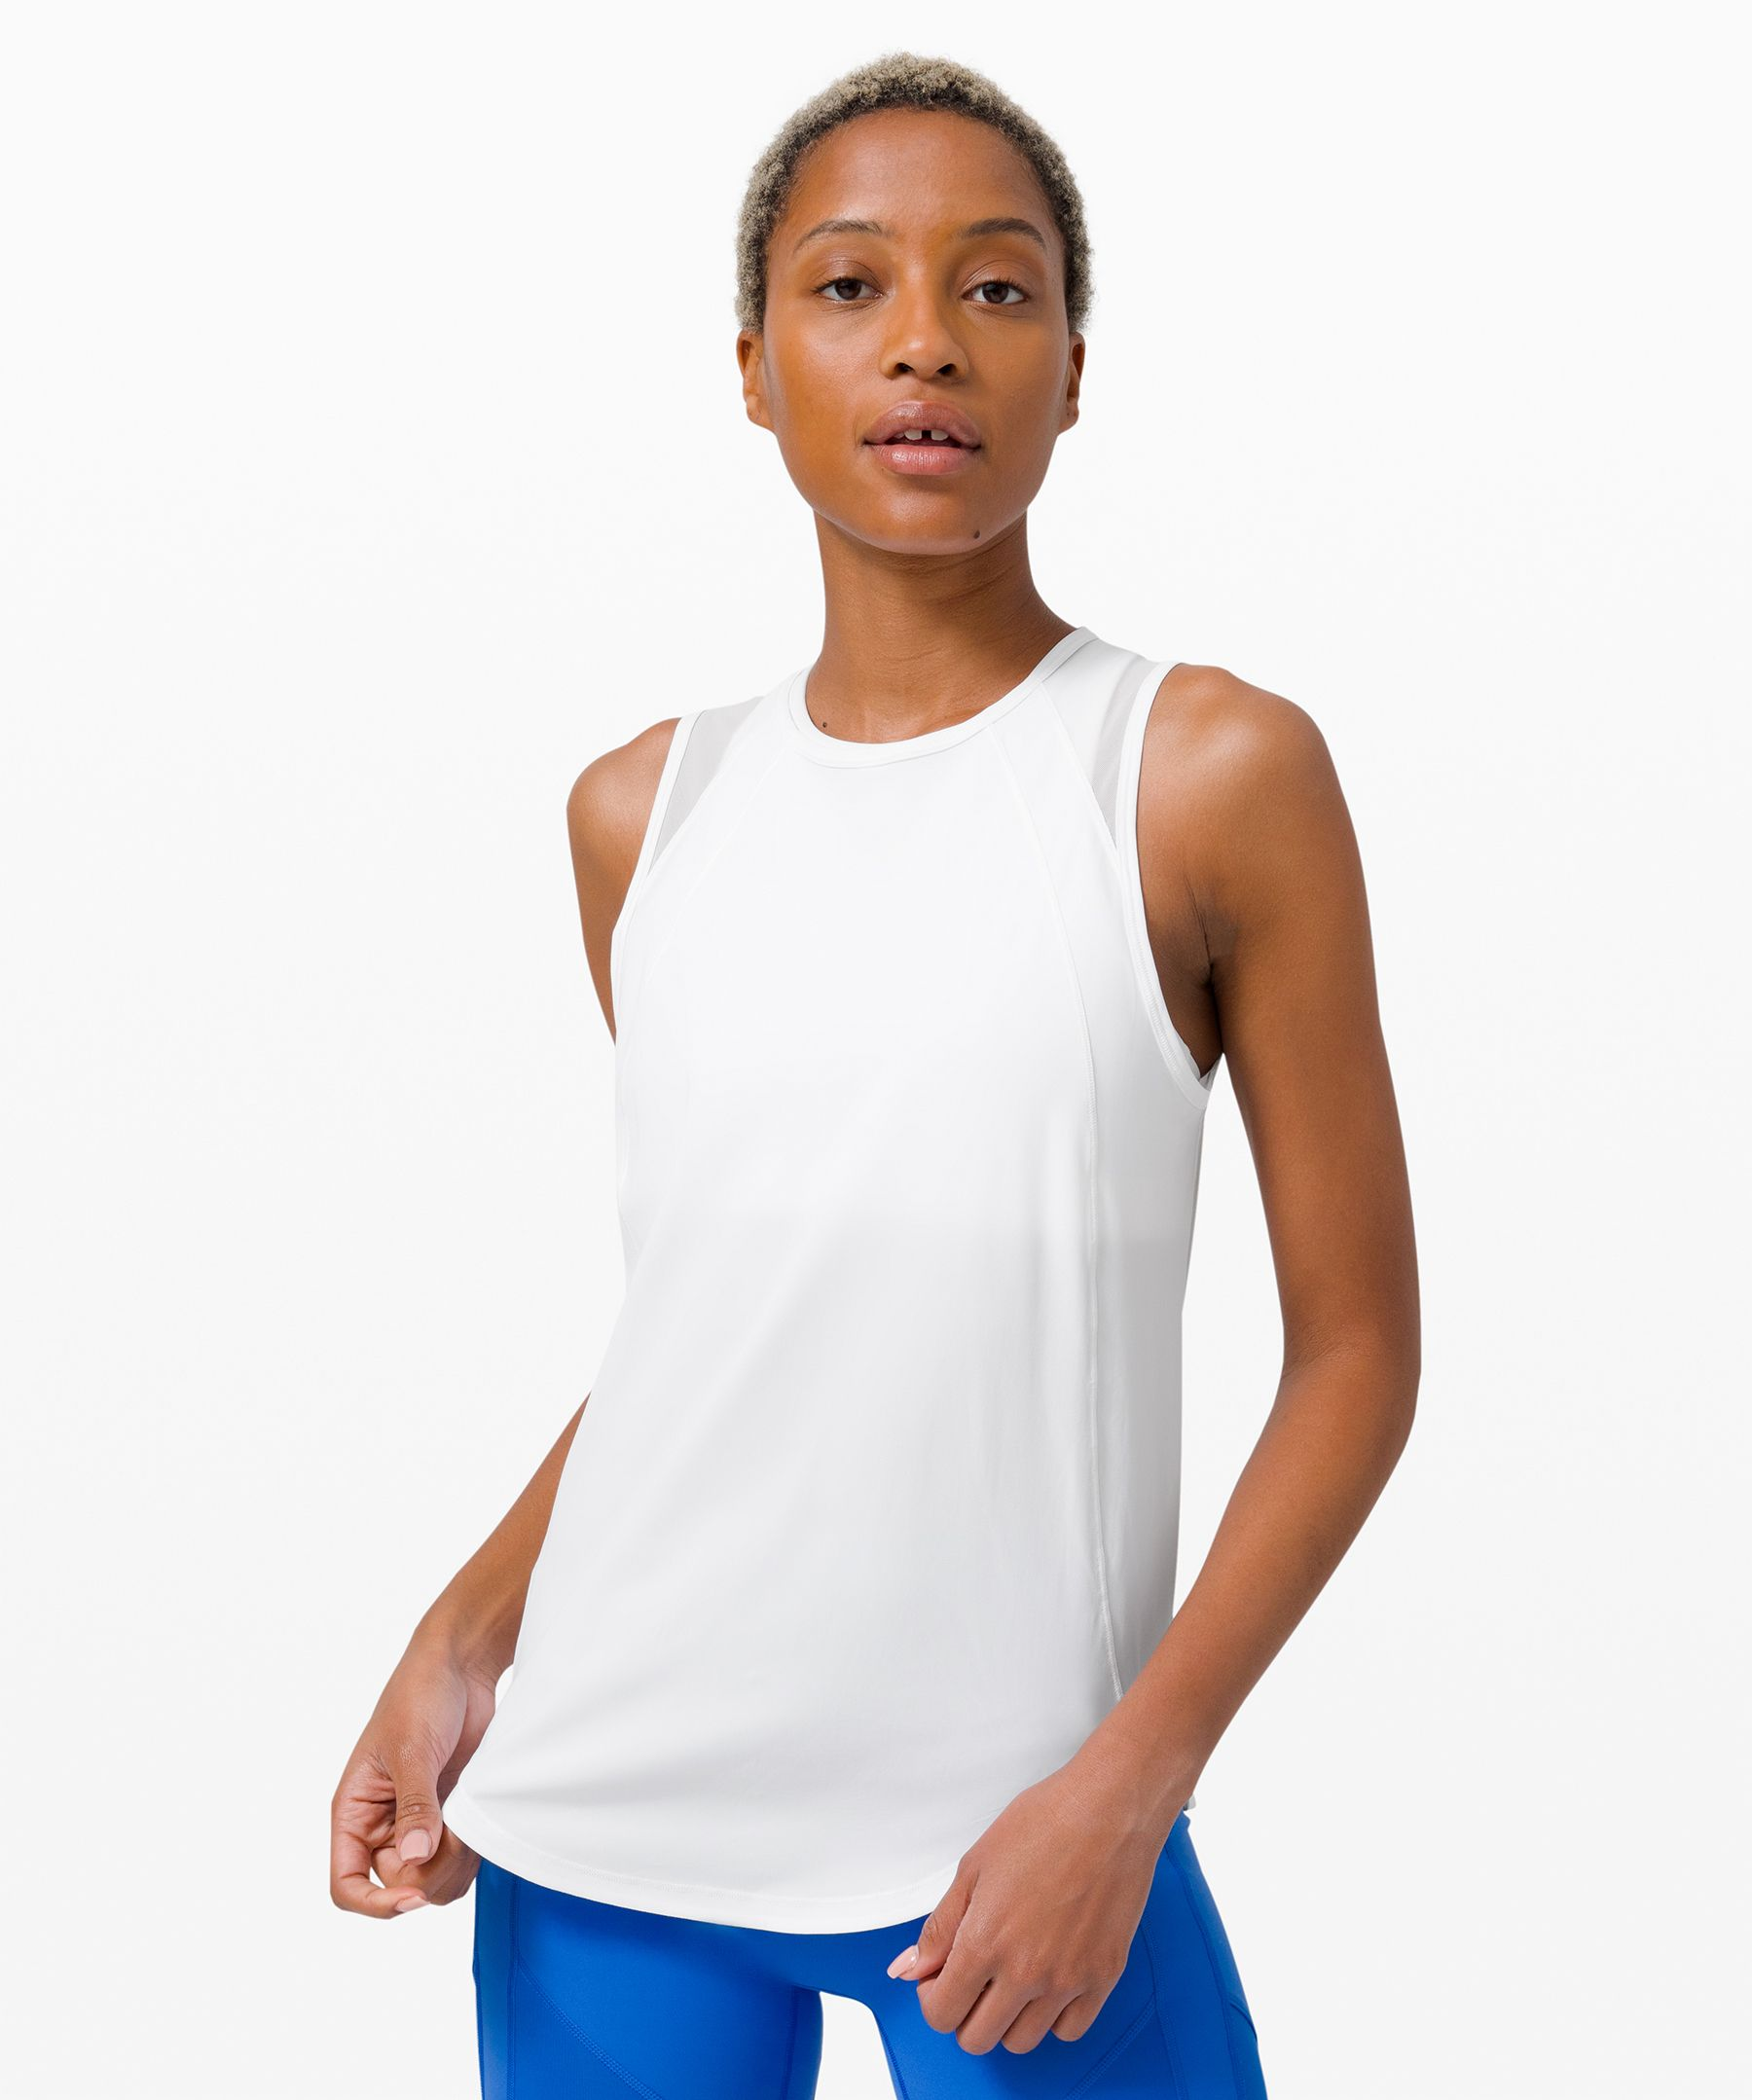 Push your limits as you sculpt  your muscles in this technical  tank, made to help keep you  cool during sweaty training  sessions. The neckline offers  coverage while the straps hide  racerback and straight-strap  bras.